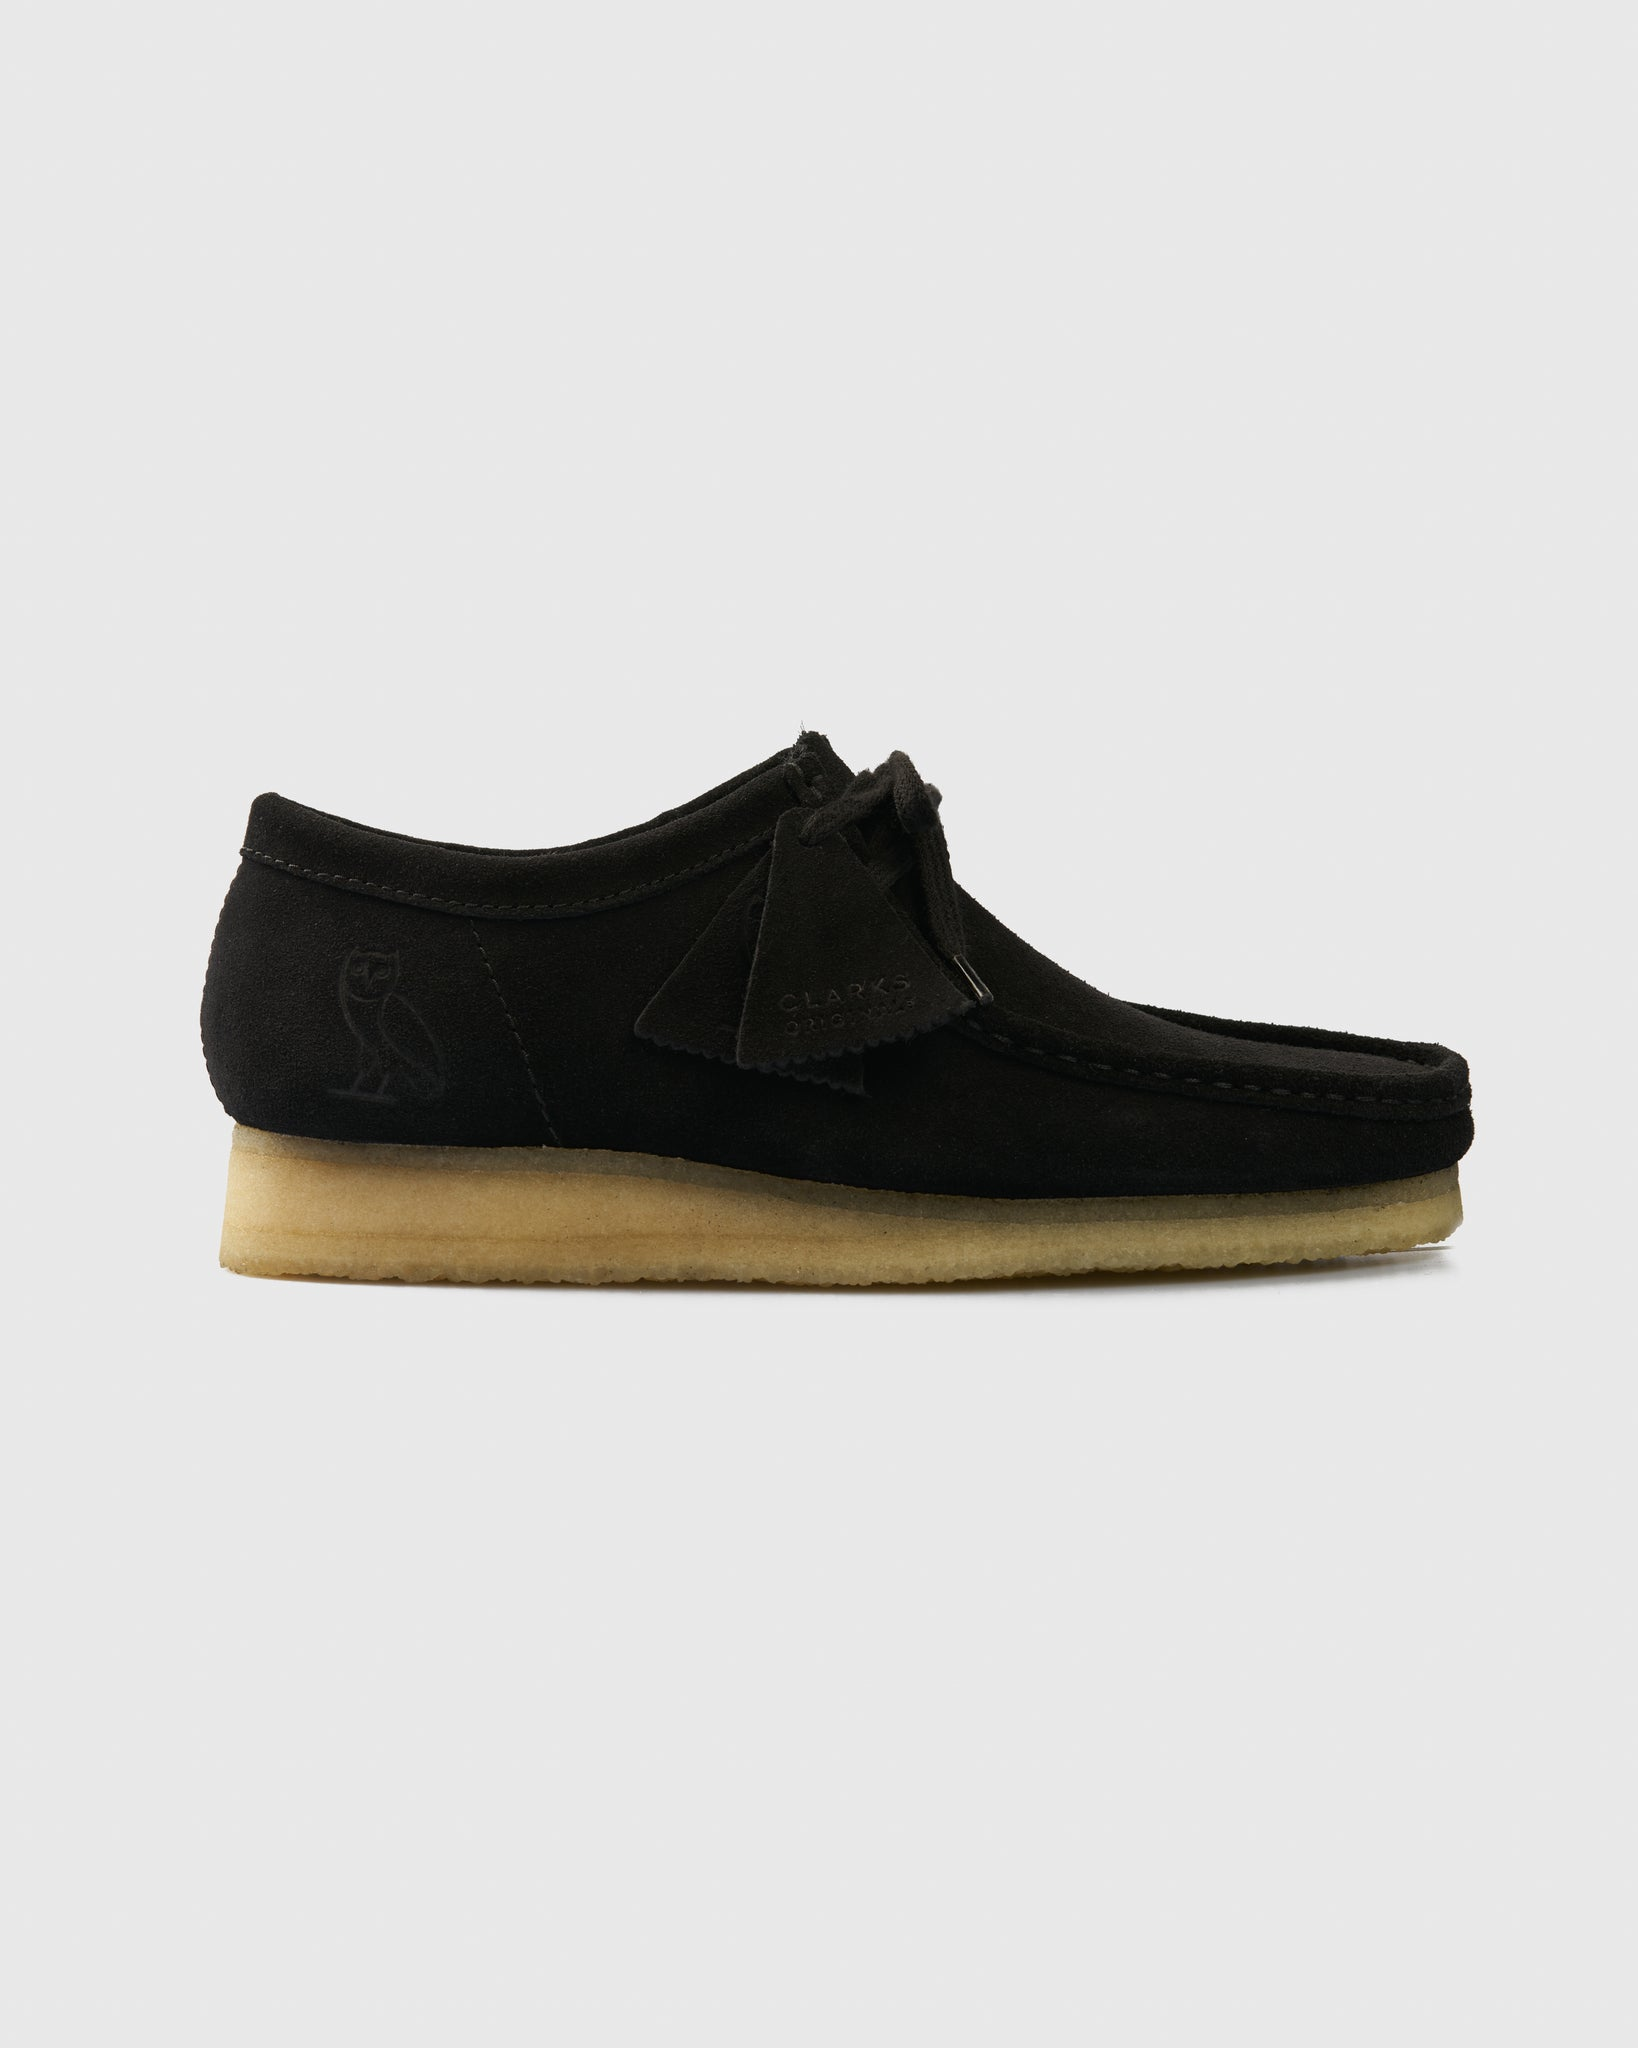 OVO x CLARKS ORIGINALS WALLABEE - BLACK IMAGE #1